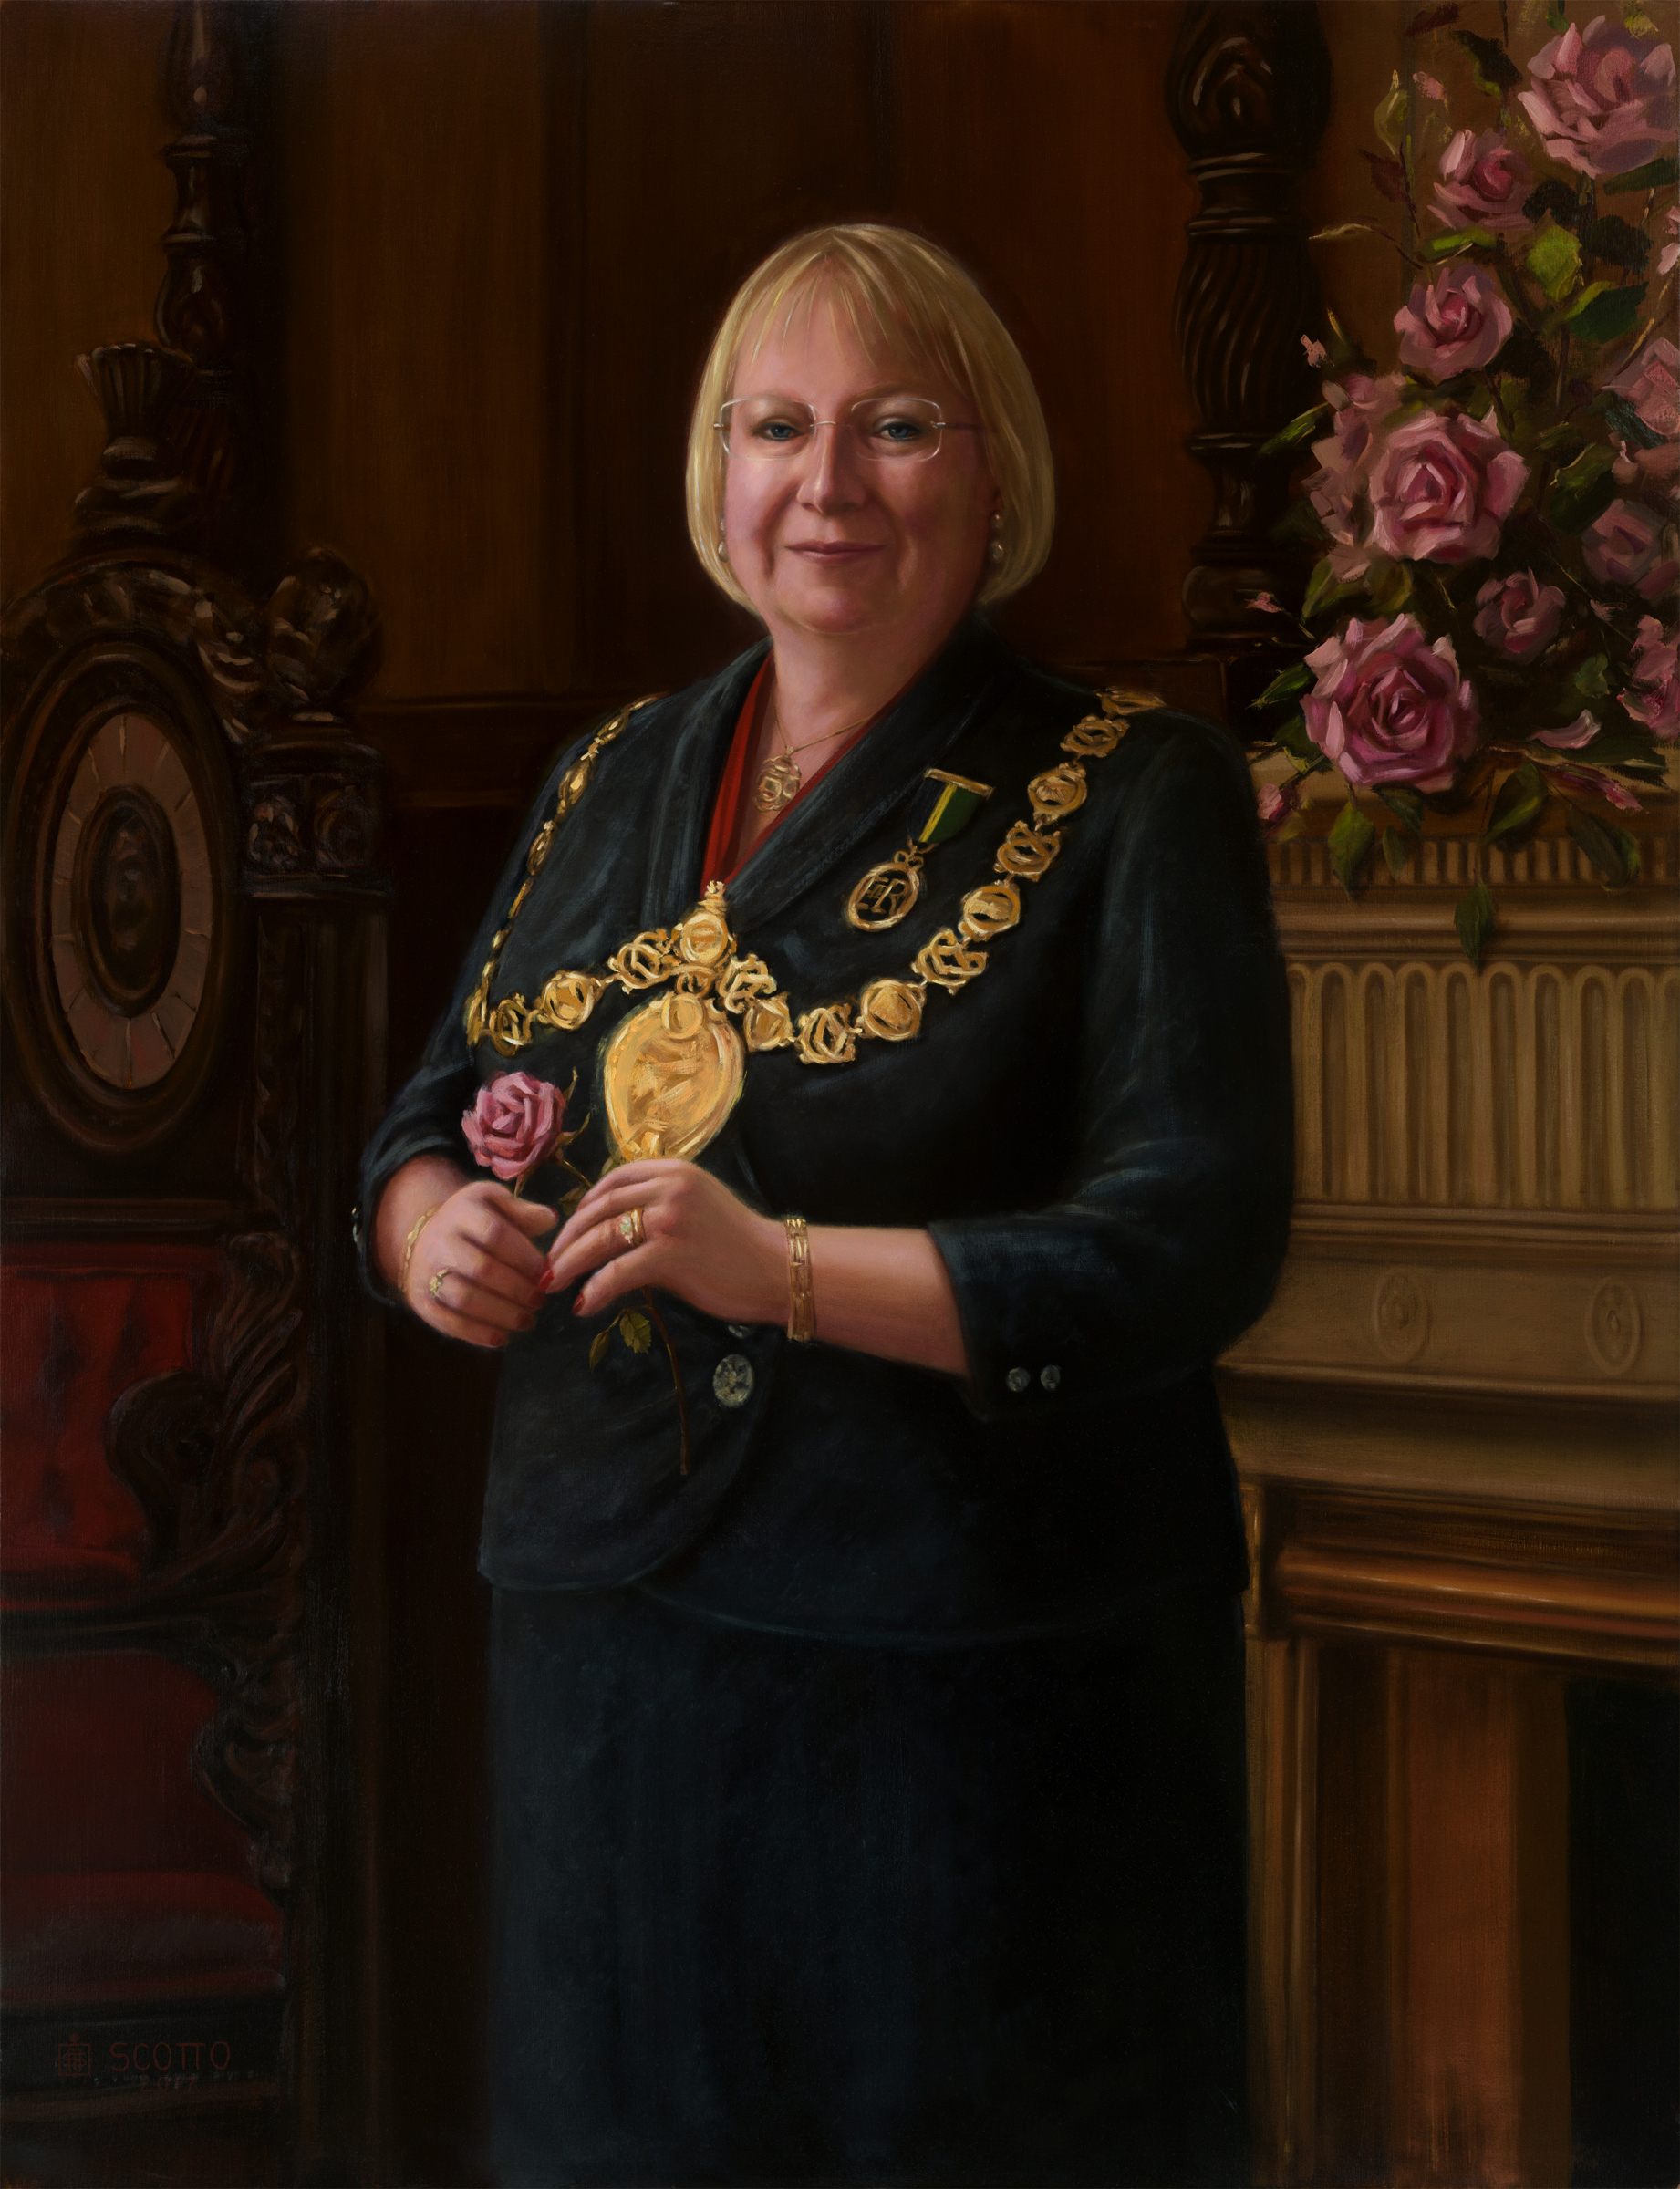 RUTH MALTMAN TD DL - MRS ALLAN LAPSLEY, DEACON CONVENER OF THE TRADES OF GLASGOW 2015-16